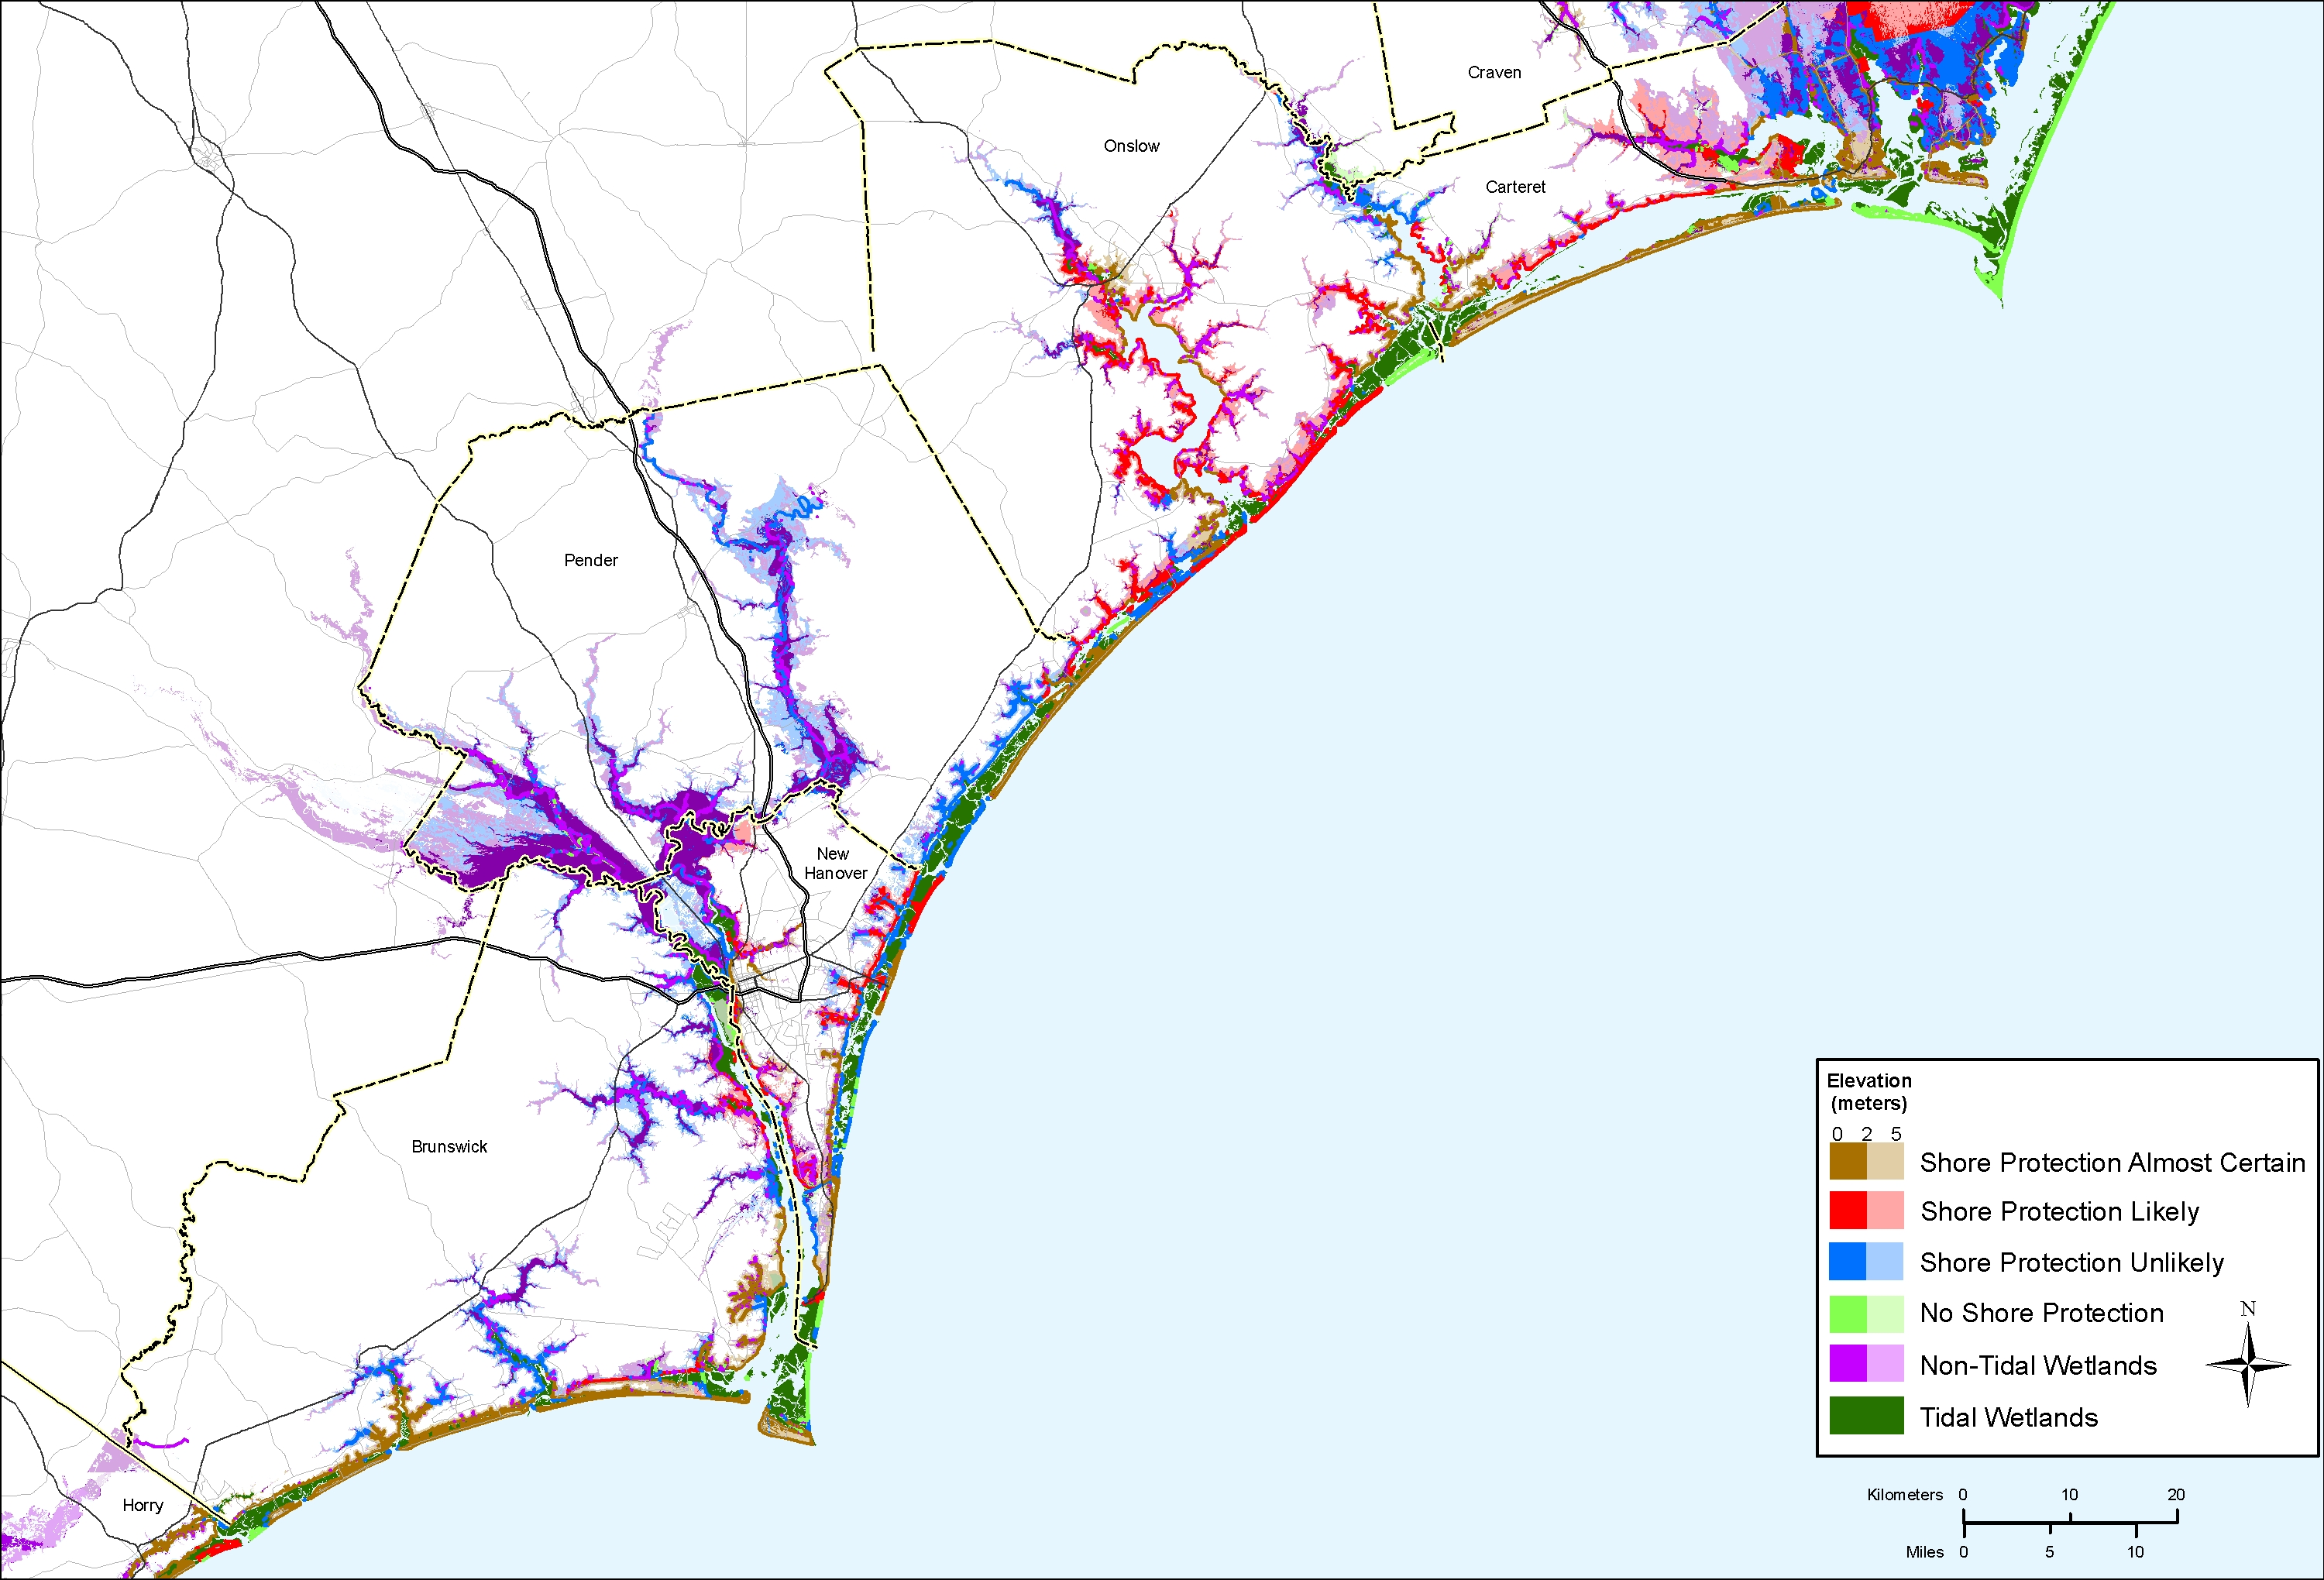 Sea Level Rise Planning Maps Likelihood Of Shore Protection In - Map of no carolina